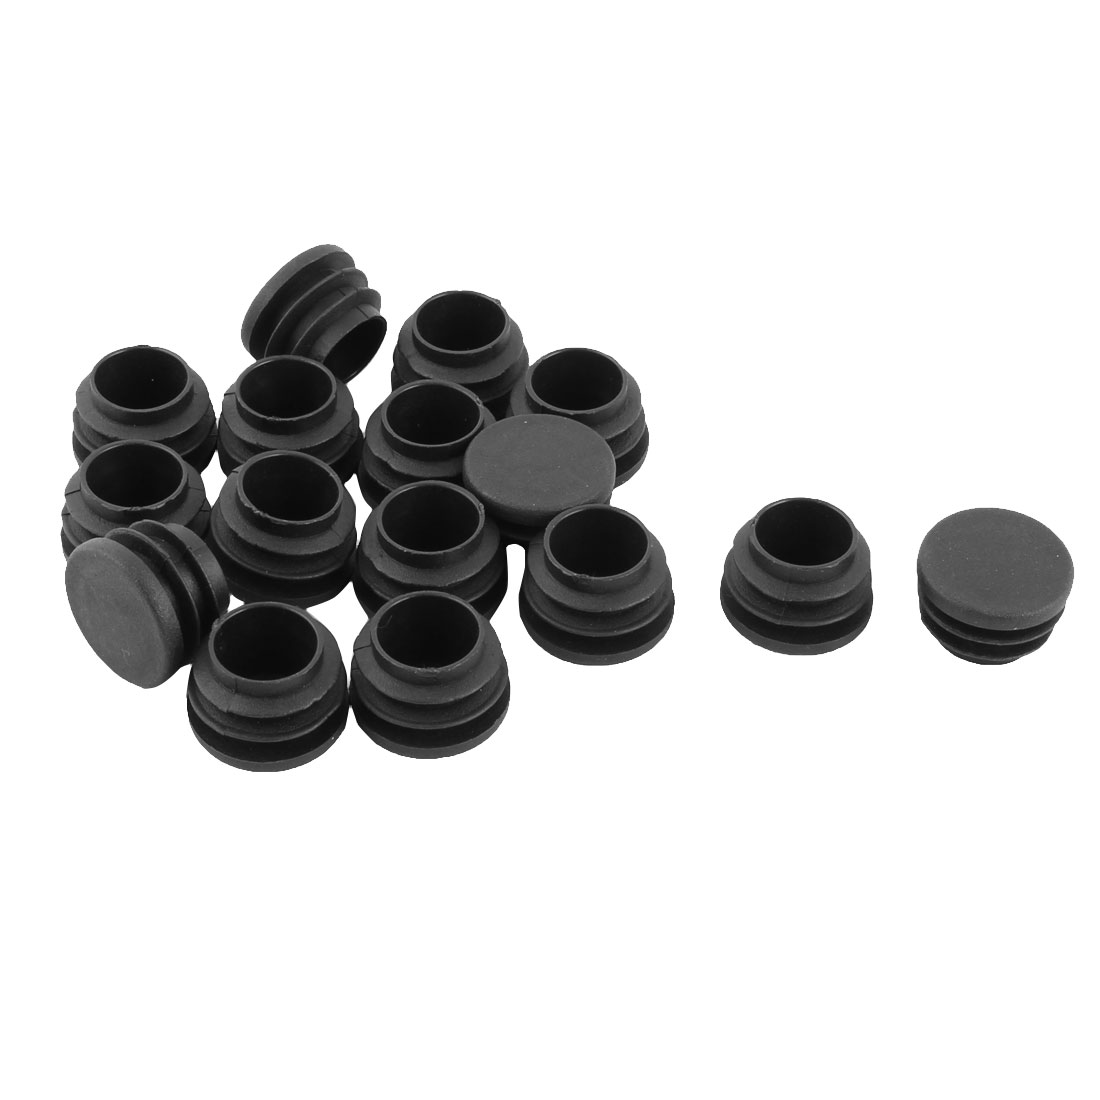 Plastic Round Flat Type Table Chair Leg Protector Cover Caps Tube Insert Black 25mm Dia 16pcs